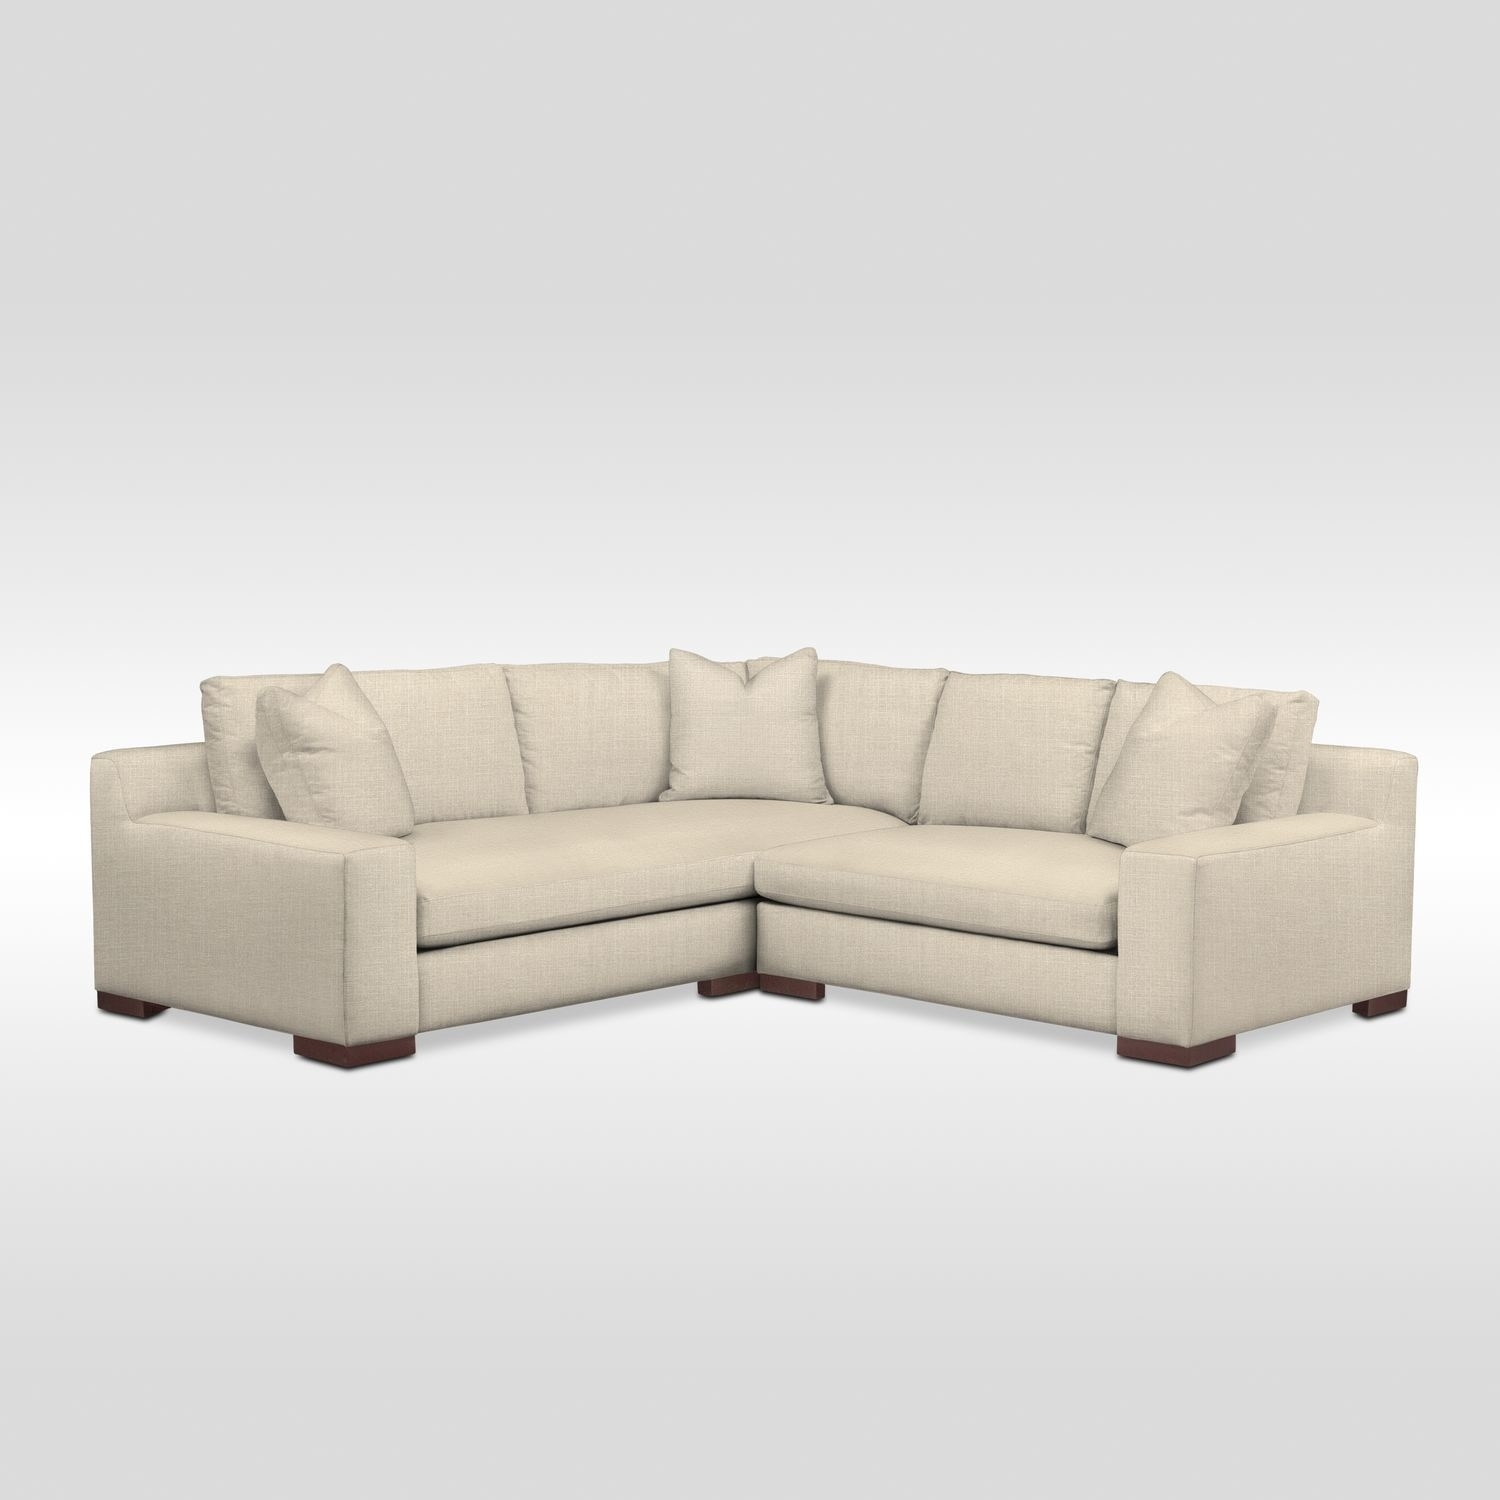 Sectional Loveseat - Tidex intended for Declan 3 Piece Power Reclining Sectionals With Right Facing Console Loveseat (Image 27 of 30)